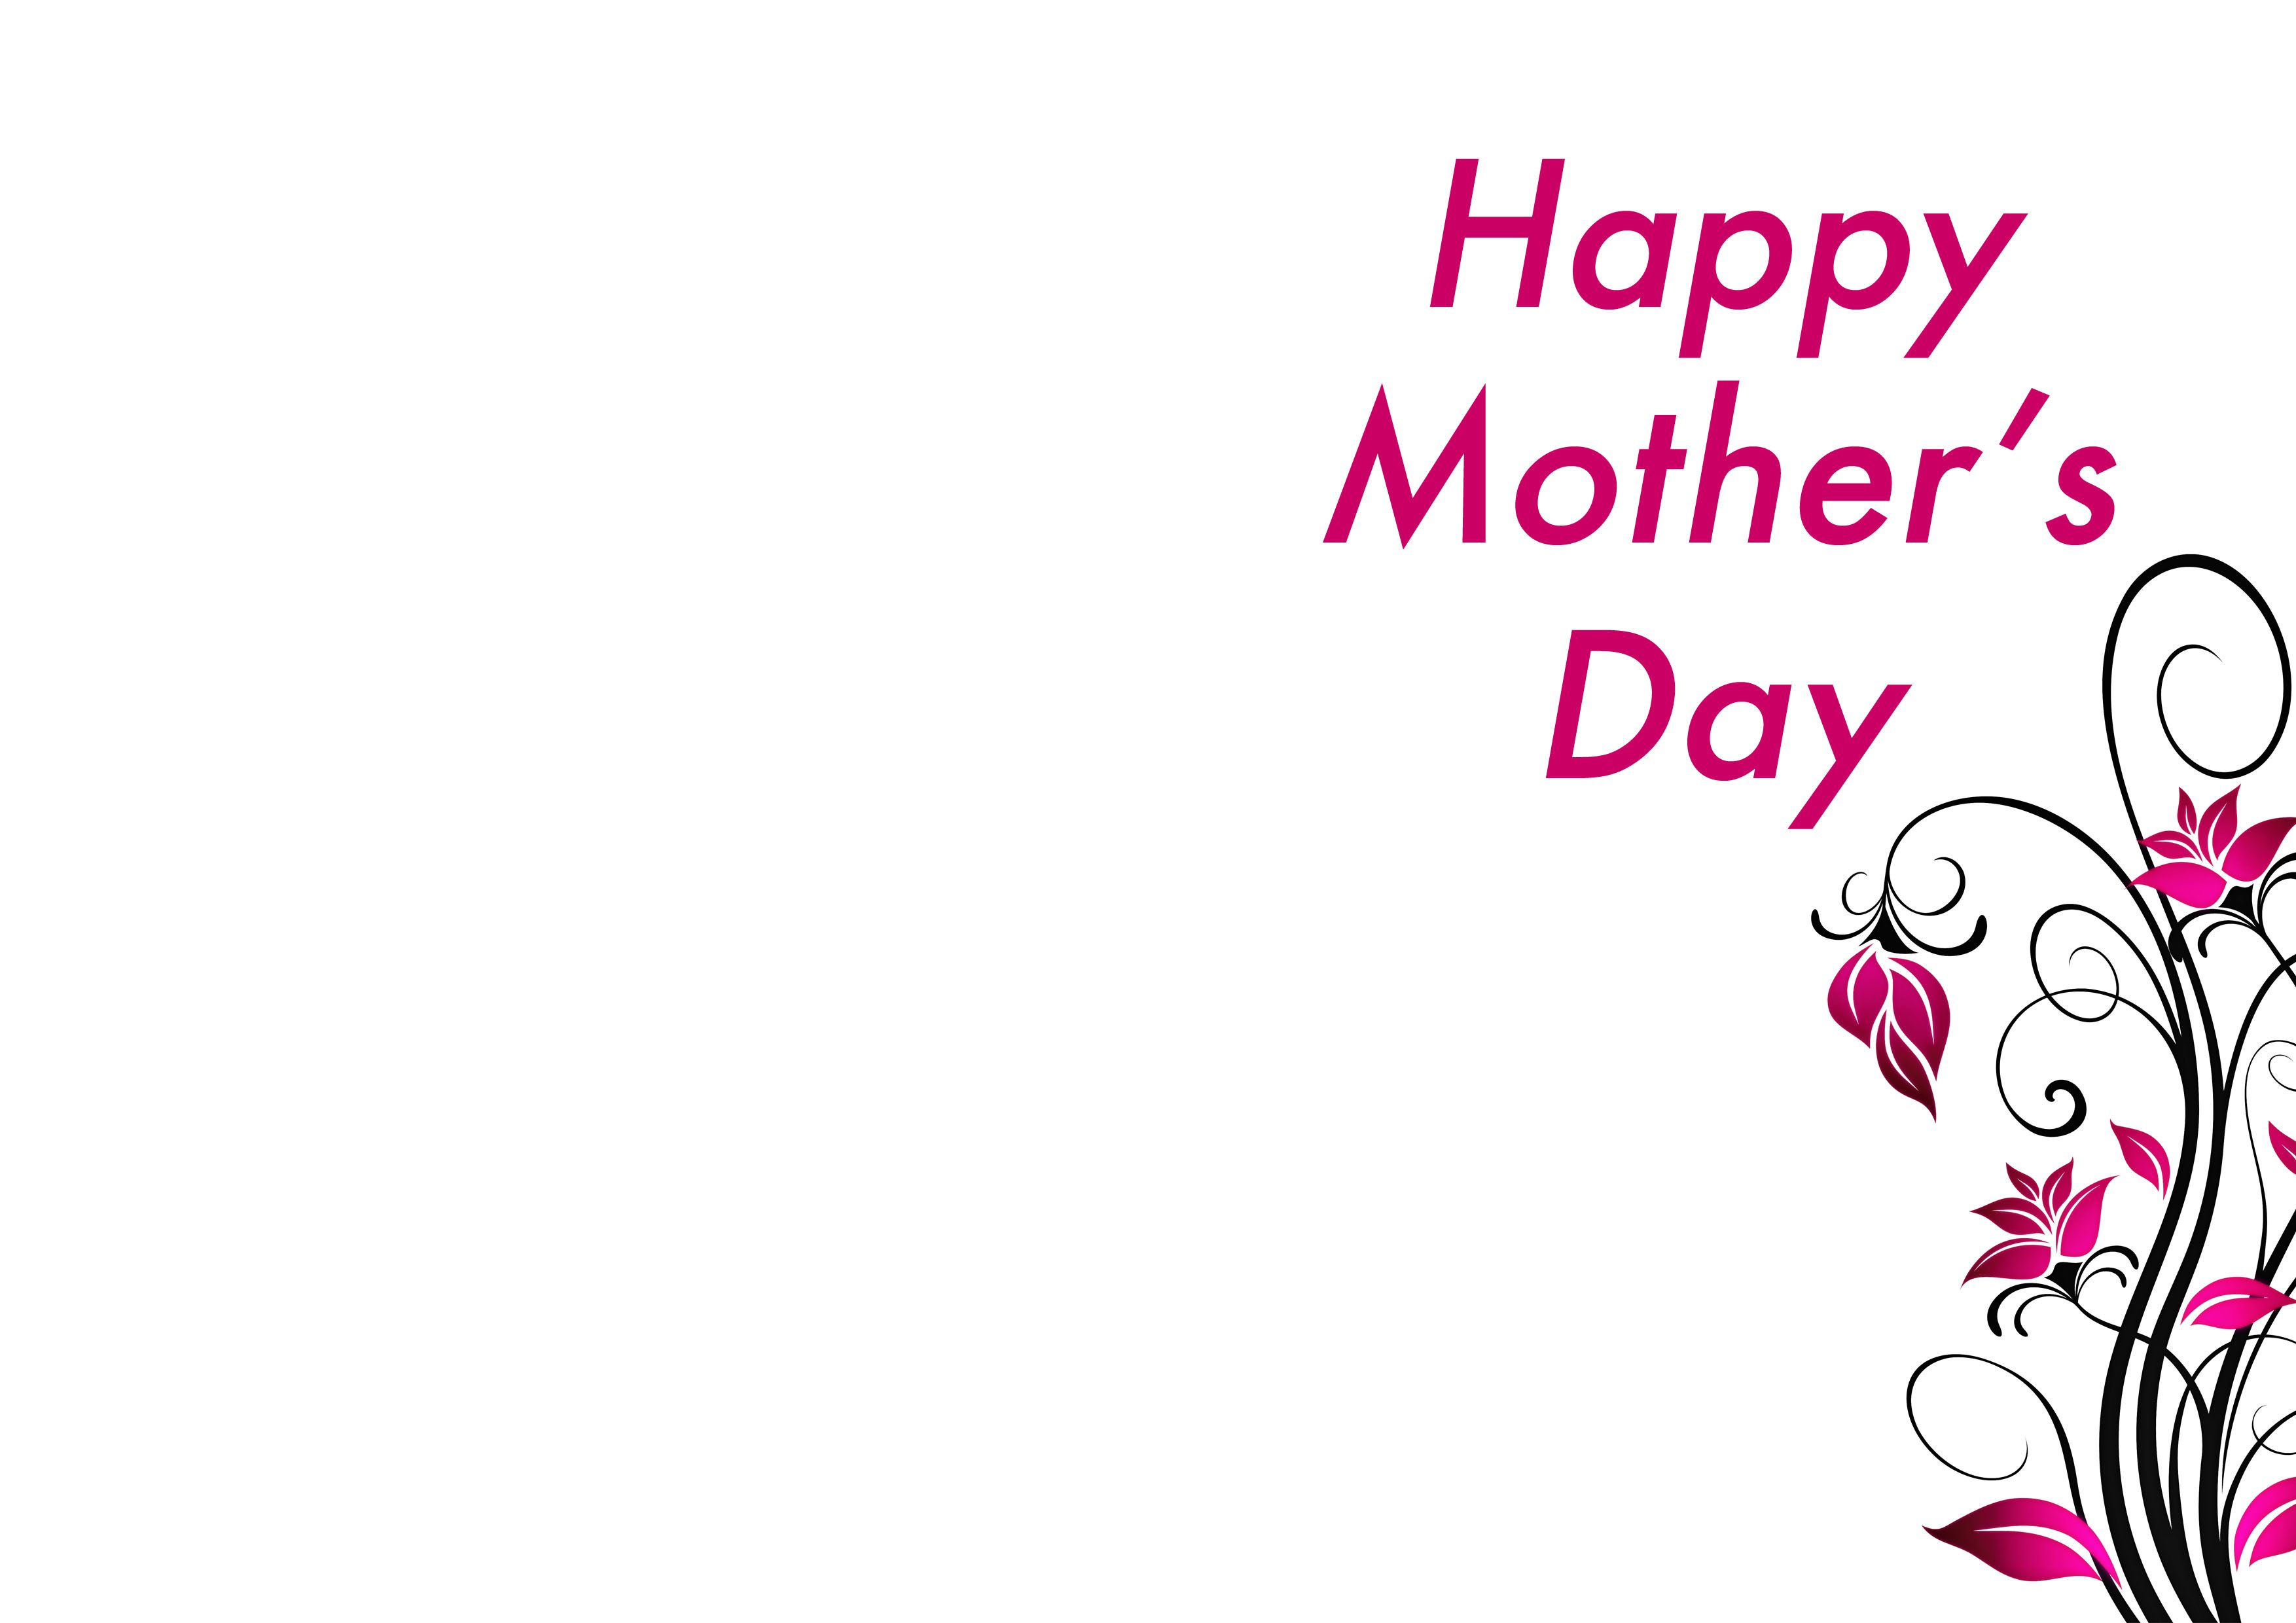 Wallpaper download mood off - Mothers Day Mom Mother Family 1mday Mood Love Holiday Wallpaper 3508x2480 666295 Wallpaperup